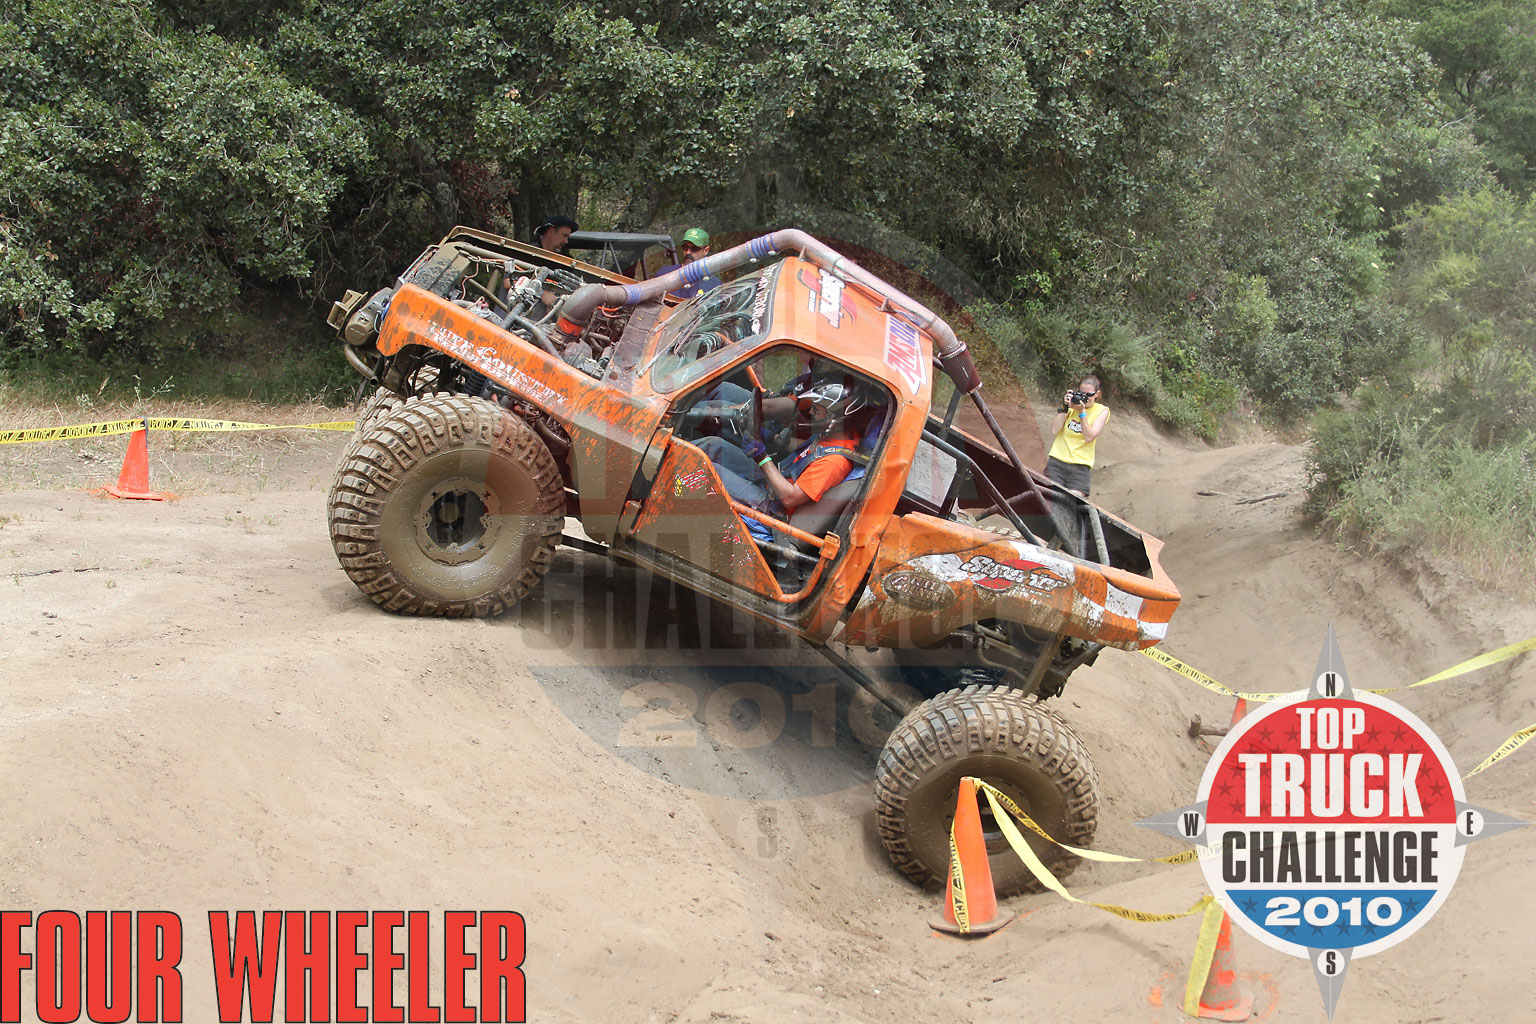 2010 Top Truck Challenge Obstacle Course Jason Gray 1975 Chevy Blazer